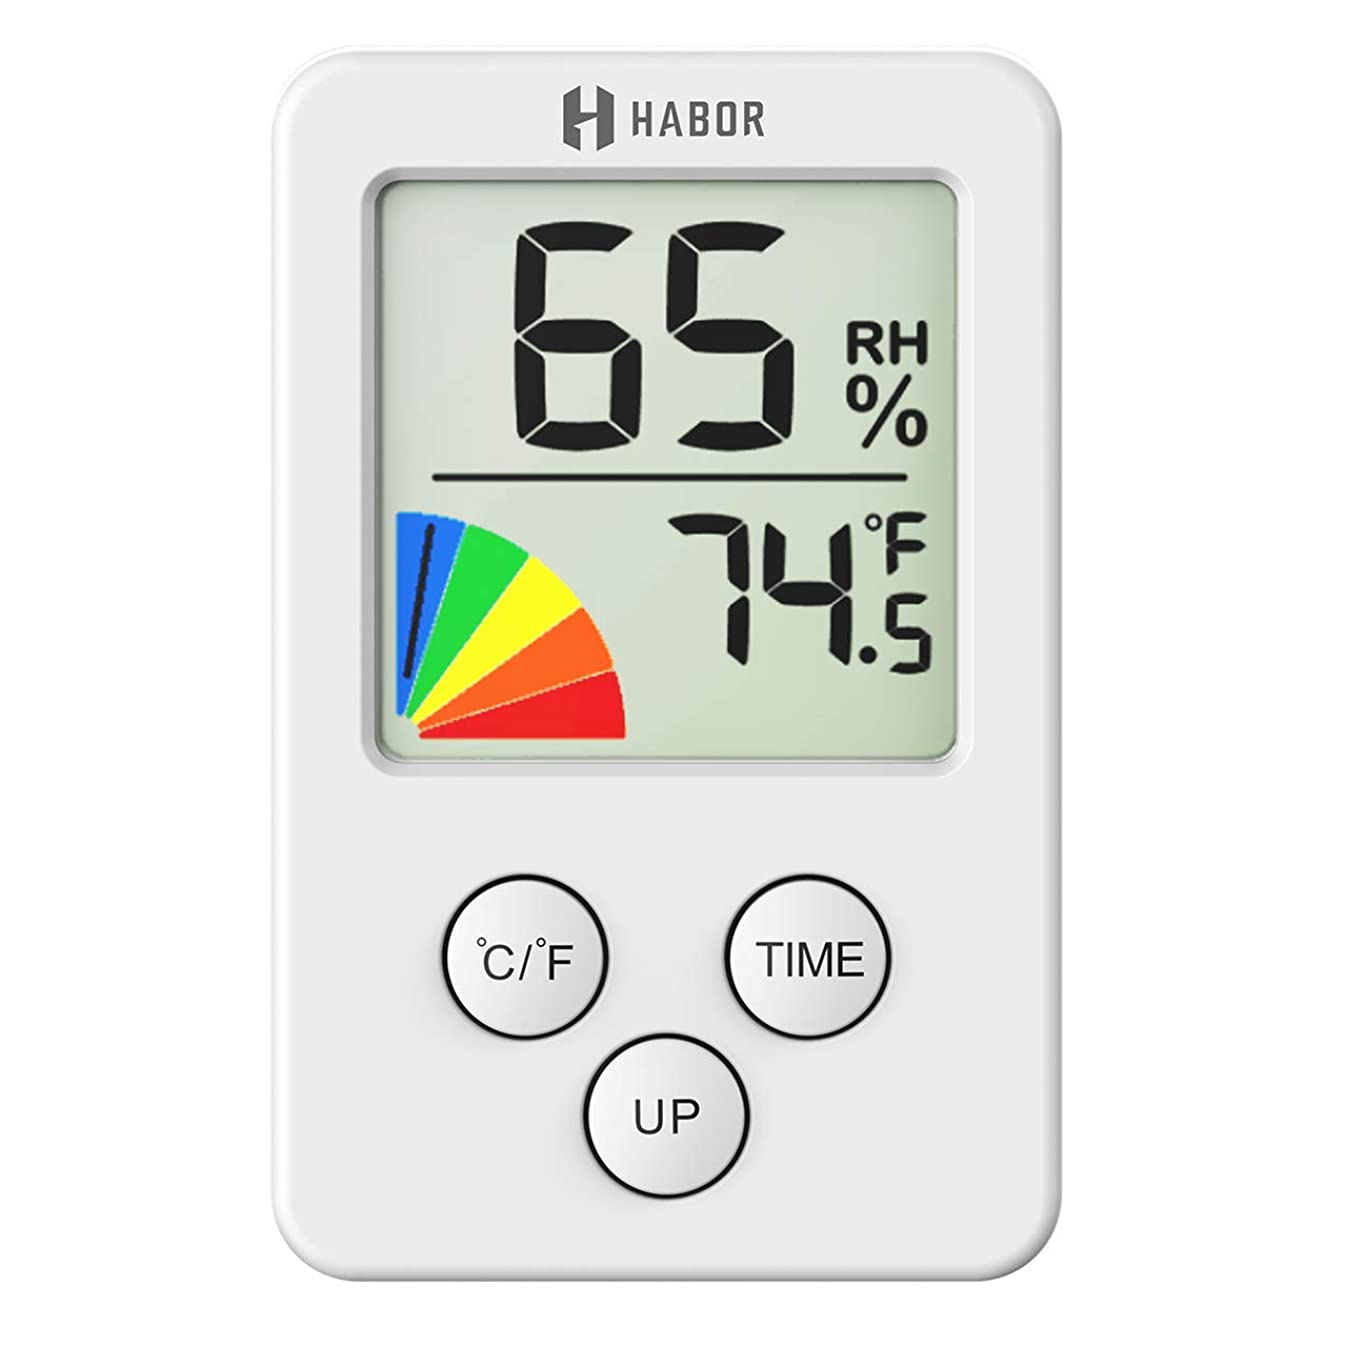 Habor STHBHM219AW-USAA1 Mini Indoor Thermometer Digital Hygrometer, 12/24 Hour Time Clock, m, Office, Greenhouse, Cellar, White (2.7 X 1.7)